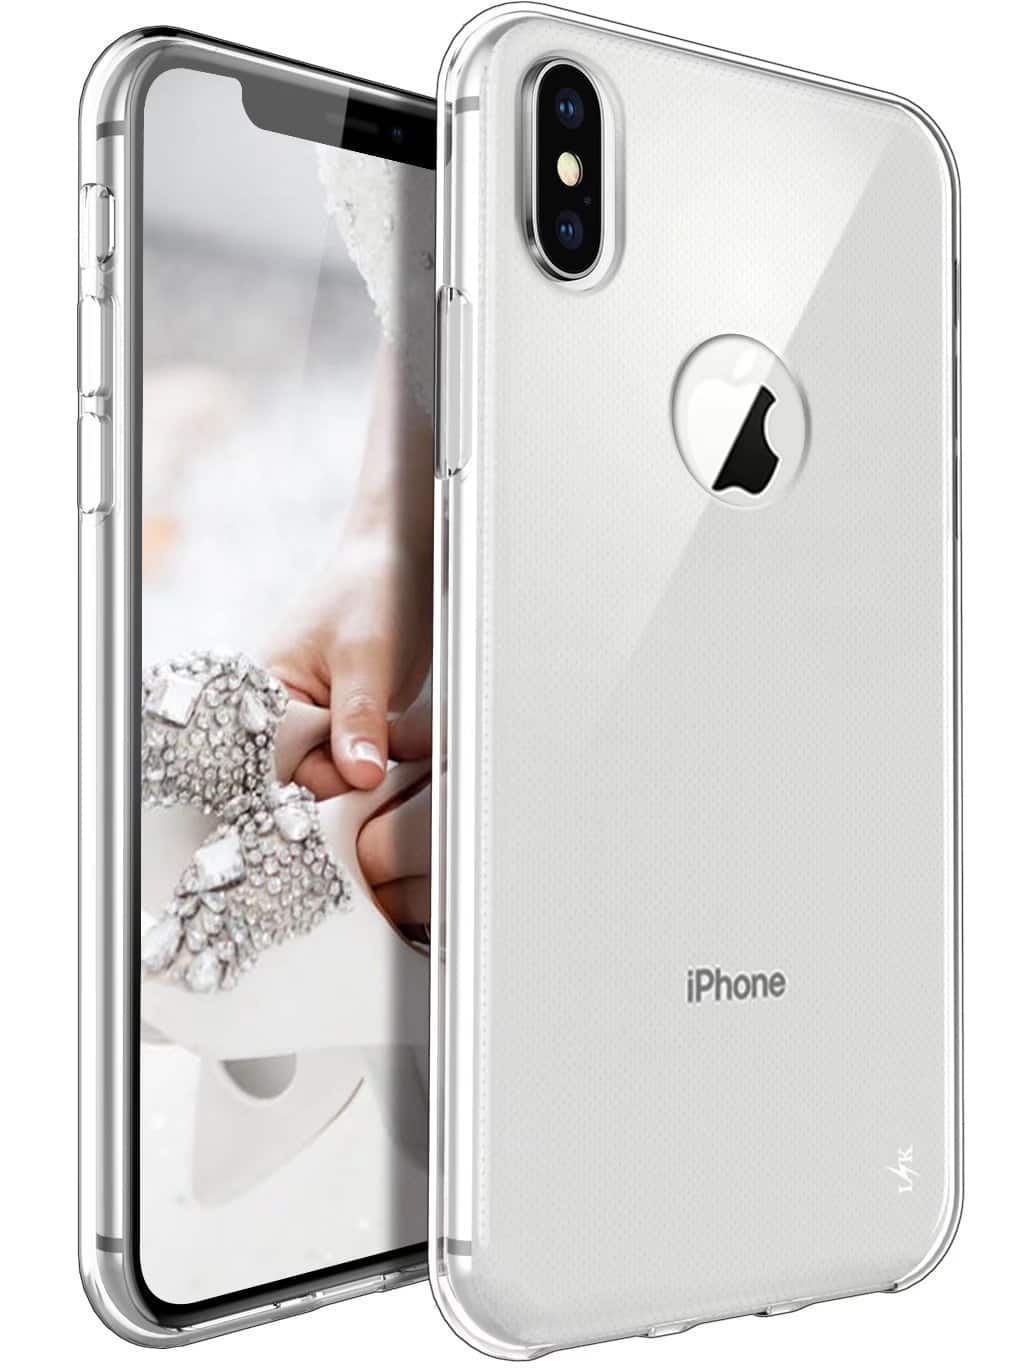 Apple iPhone X Cases and Samsung Galaxy Note 8 Cases, TPU, Hybrid, Wallet Cases From $5-$6.50 AC